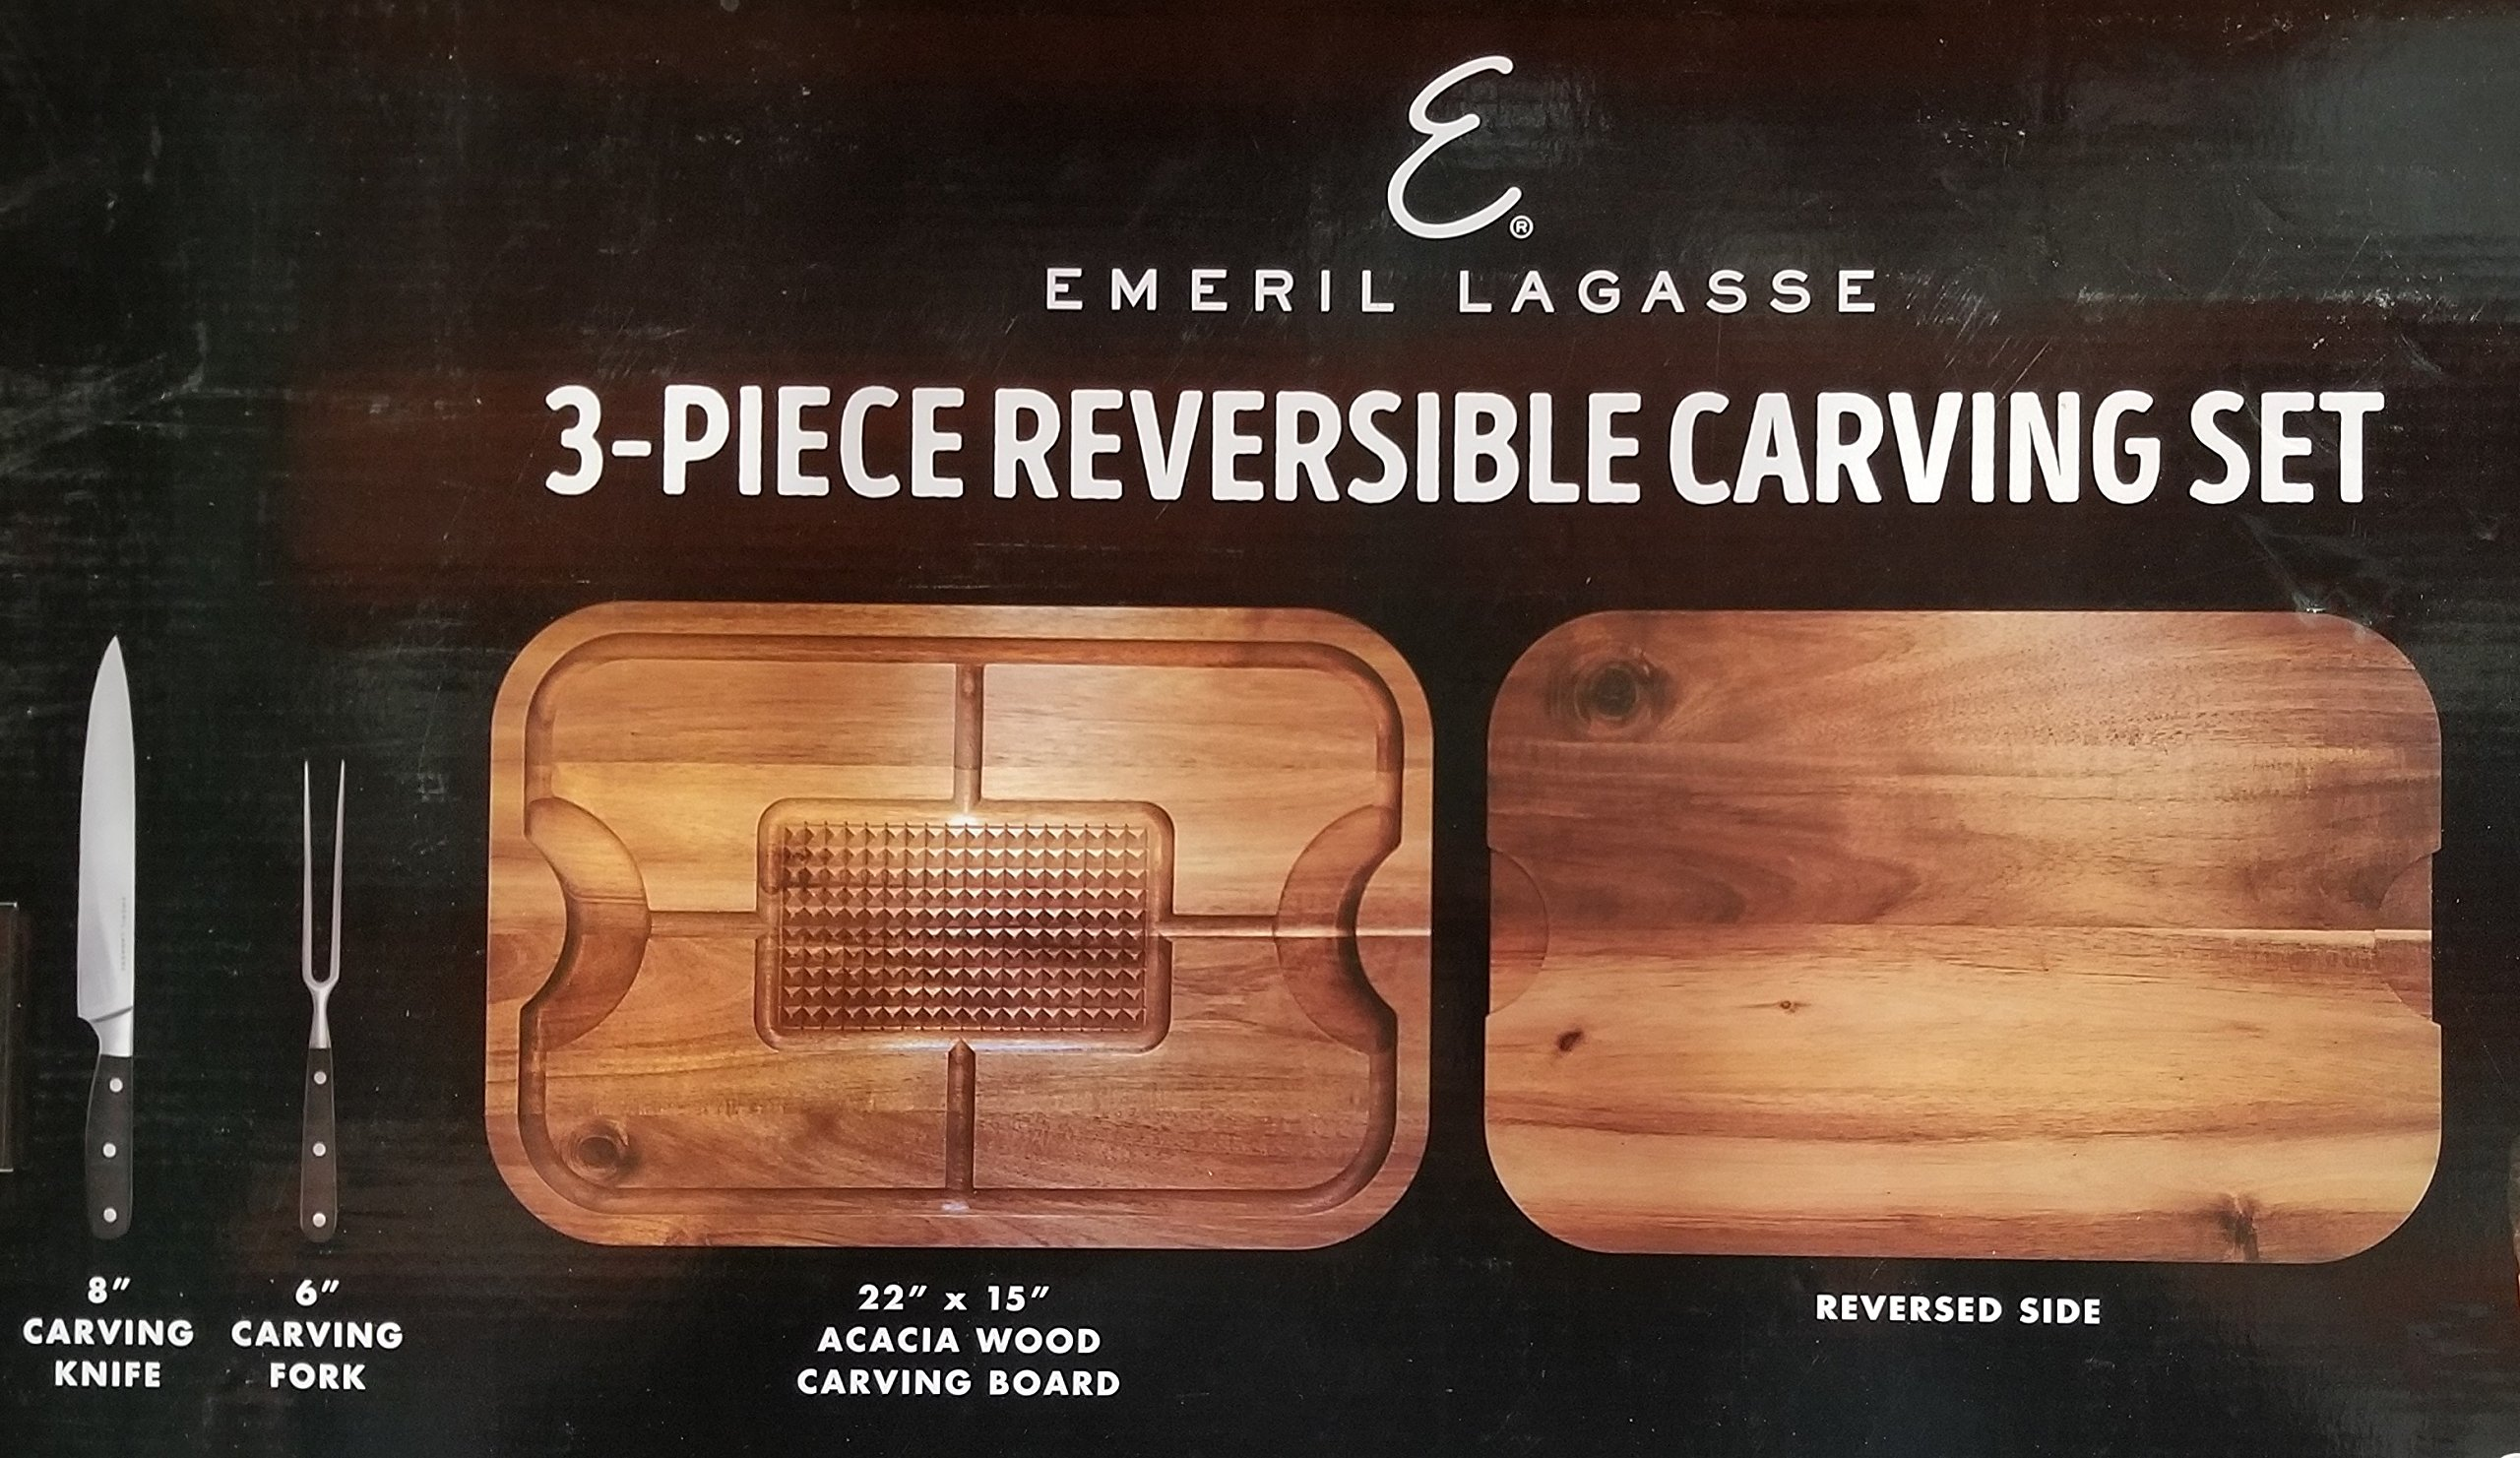 Emeril Lagasse 3 piece Reversible Carving Set